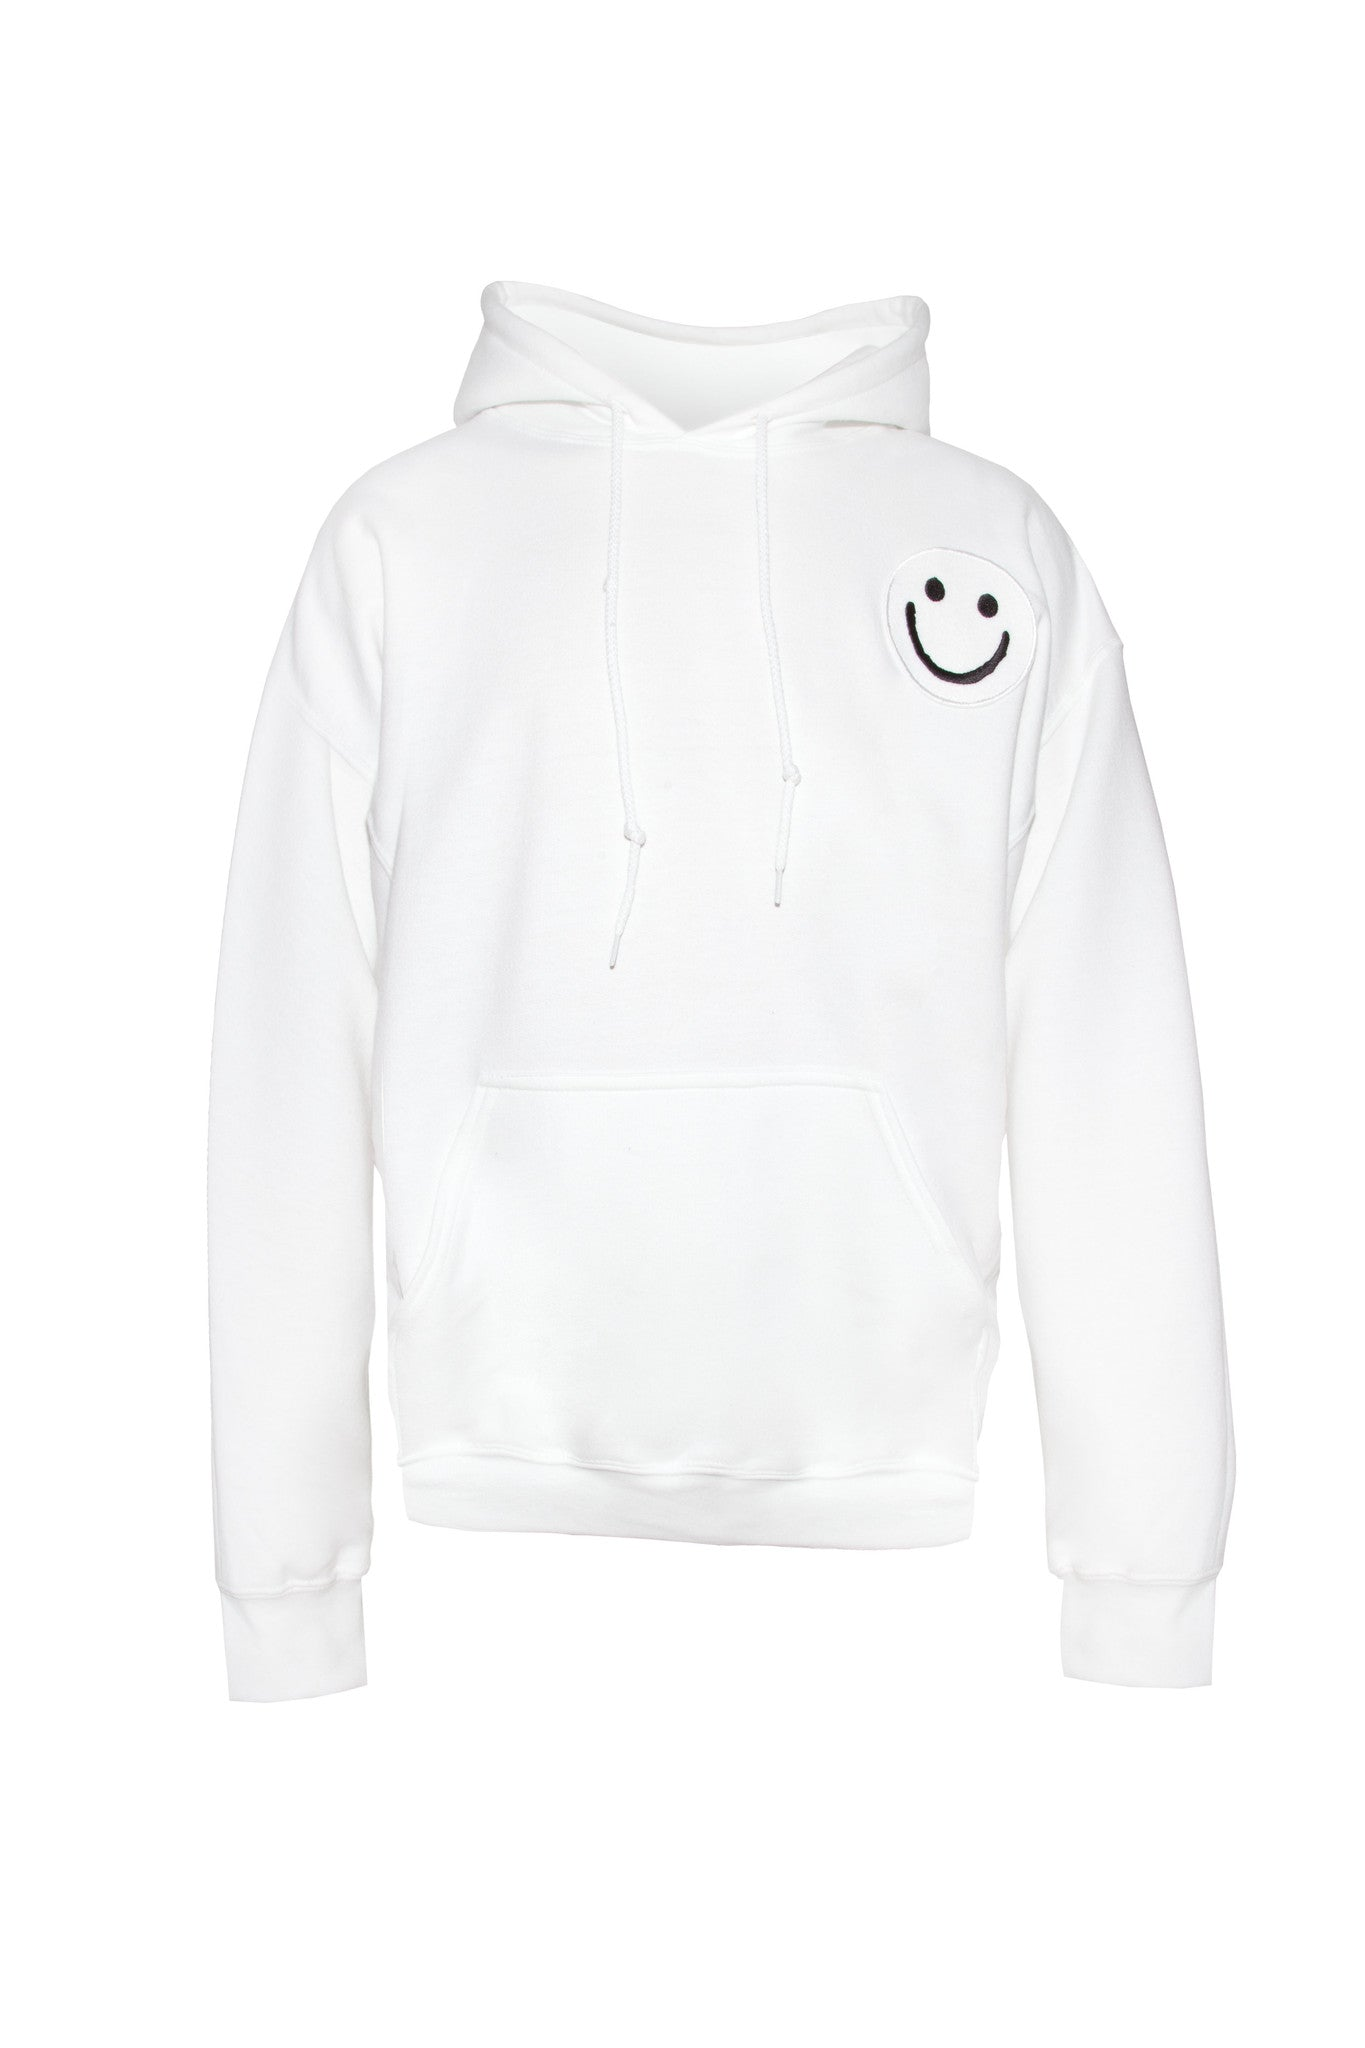 Smiley Hoody